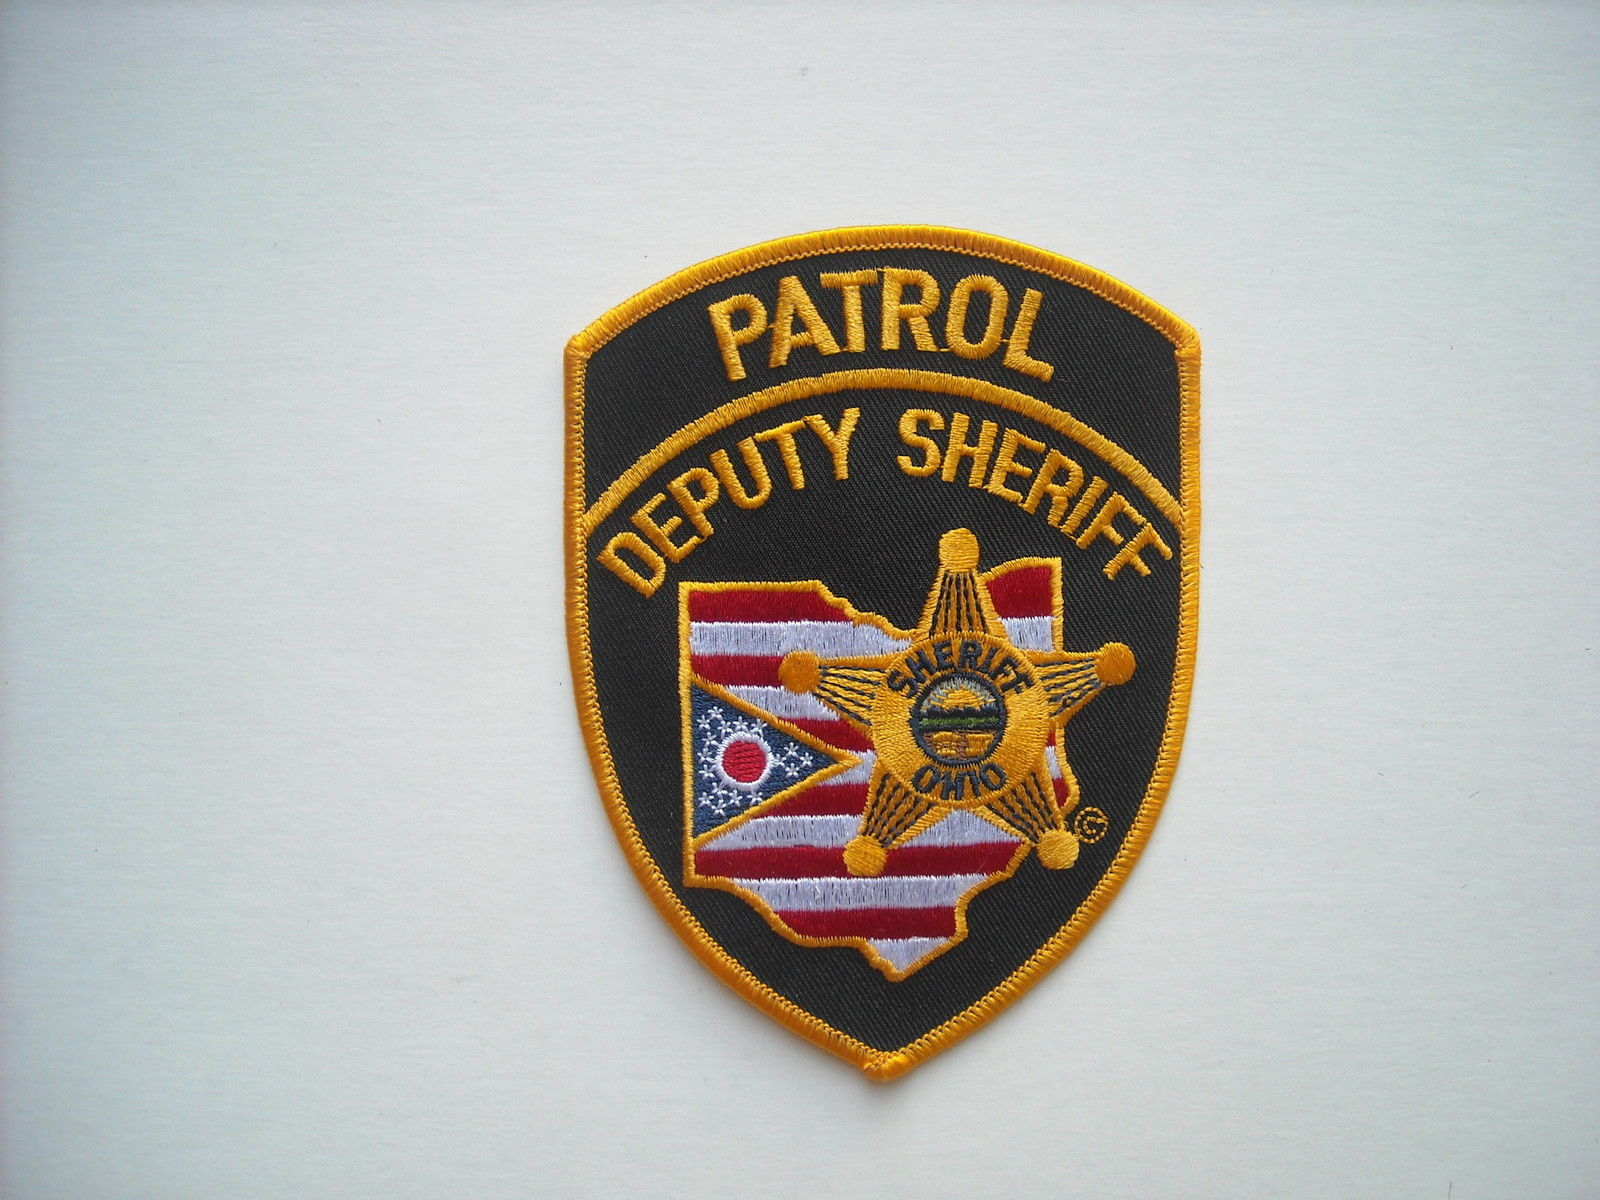 Download free ohio patch patrol state piratebaygrab for Ohio motor carrier enforcement